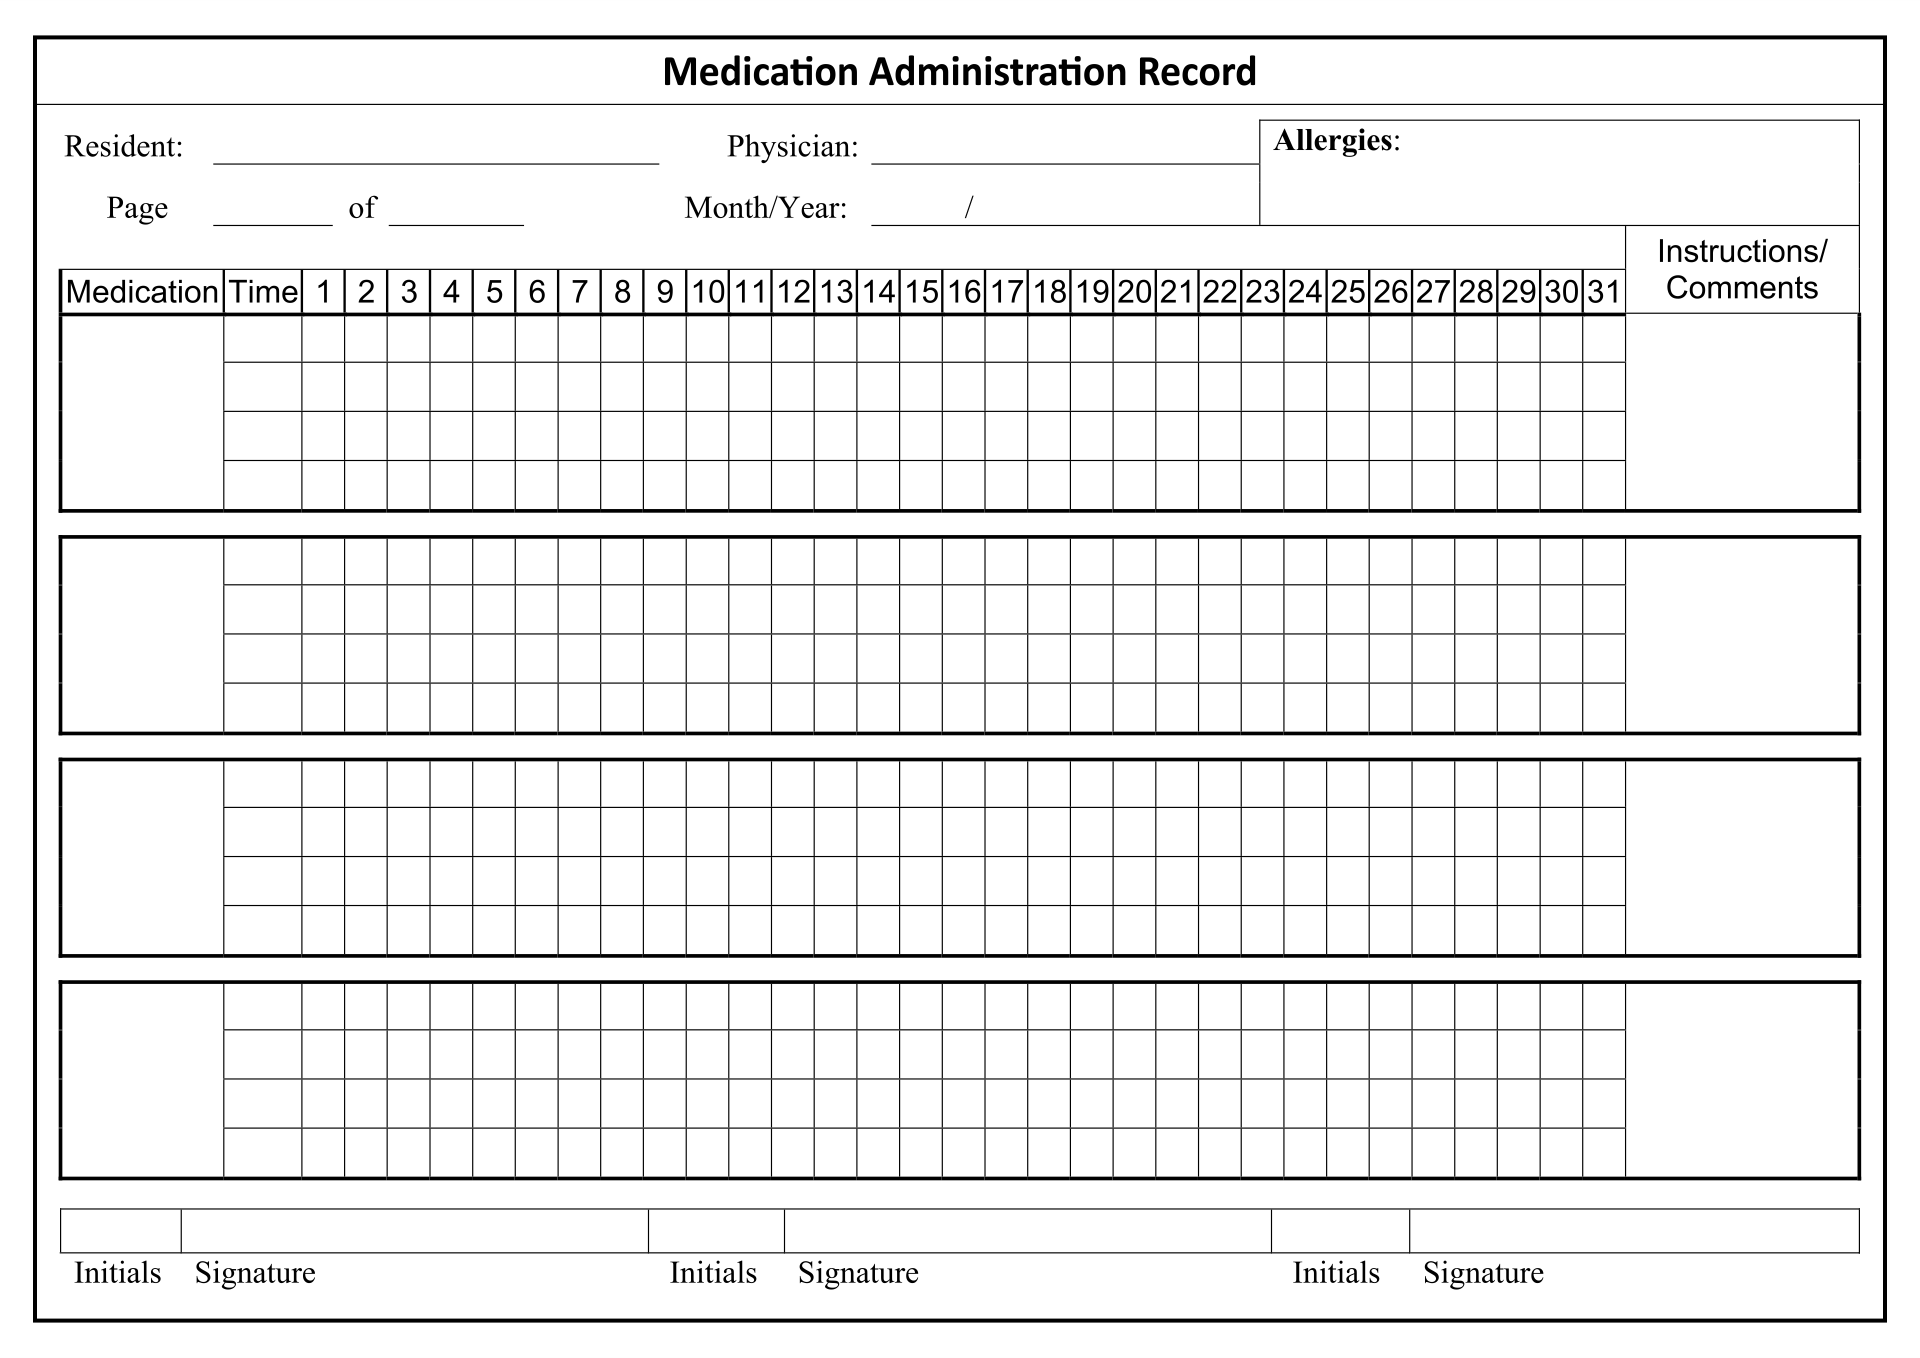 Medication Administration Record Sheet